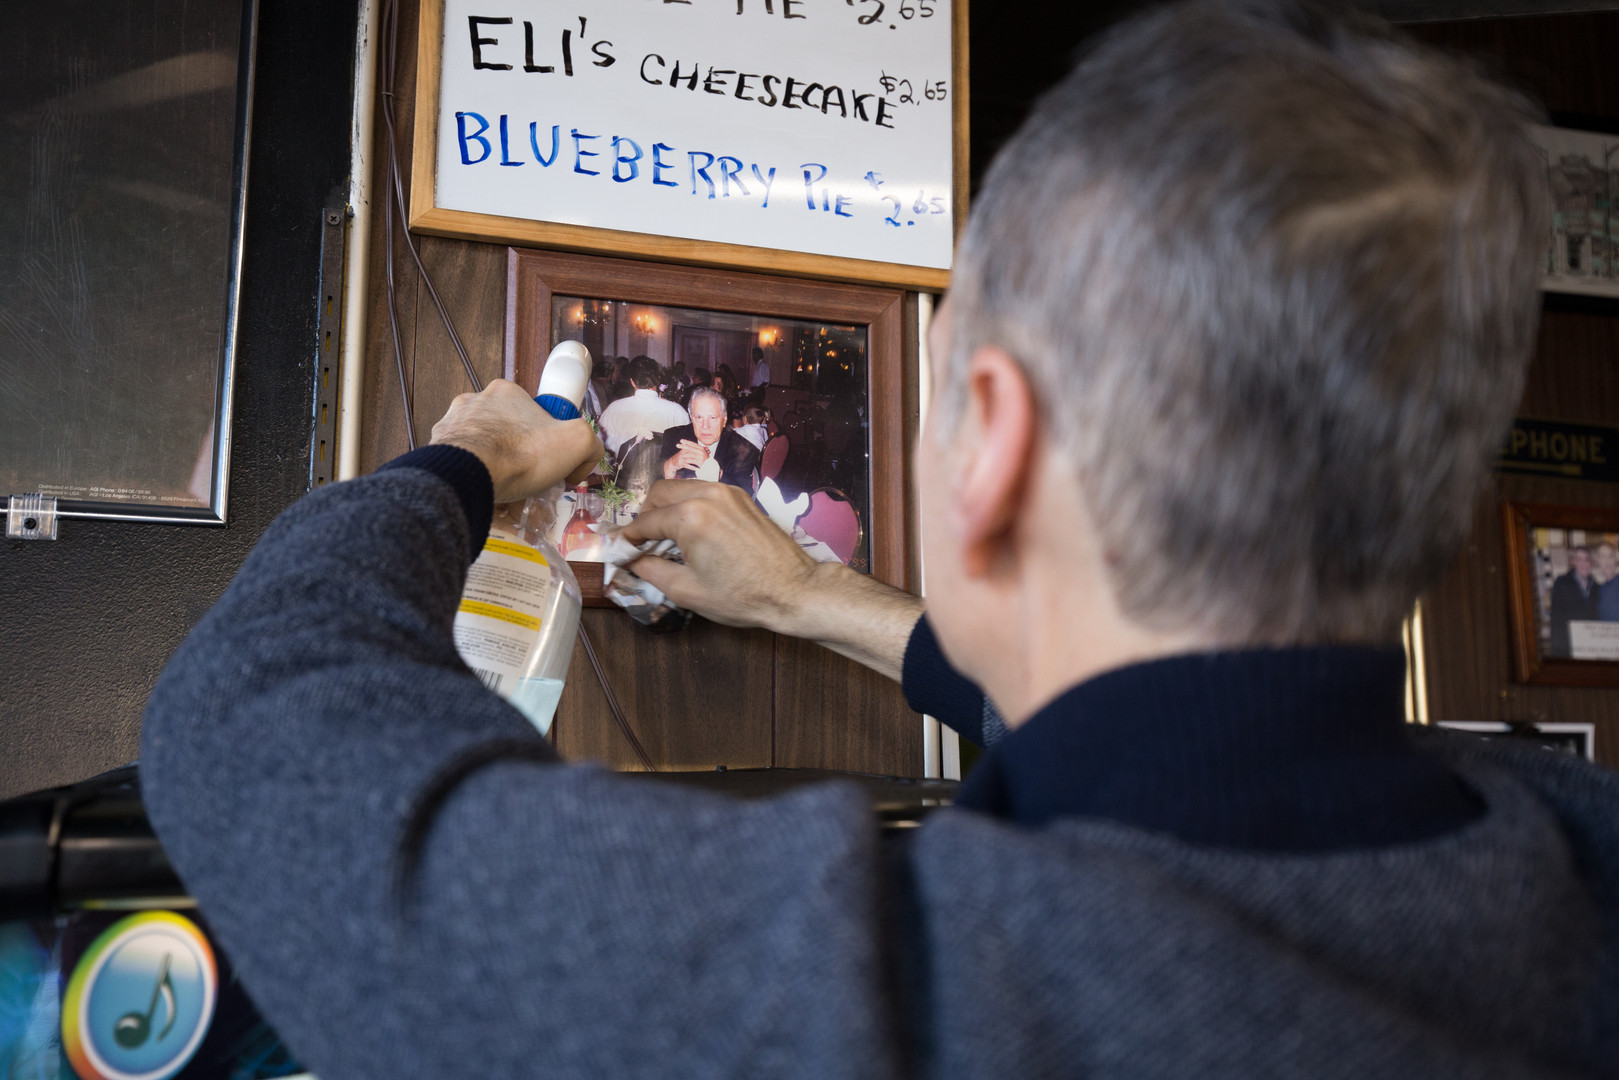 """7:42 a.m. Frank hangs a photograph of his father and original owner of Jeri's Grill, Anice, above the new jukebox. """"There's the legacy of my dad, I wouldn't be here without him—that's for sure,"""" Frank said. """"He started it all."""""""